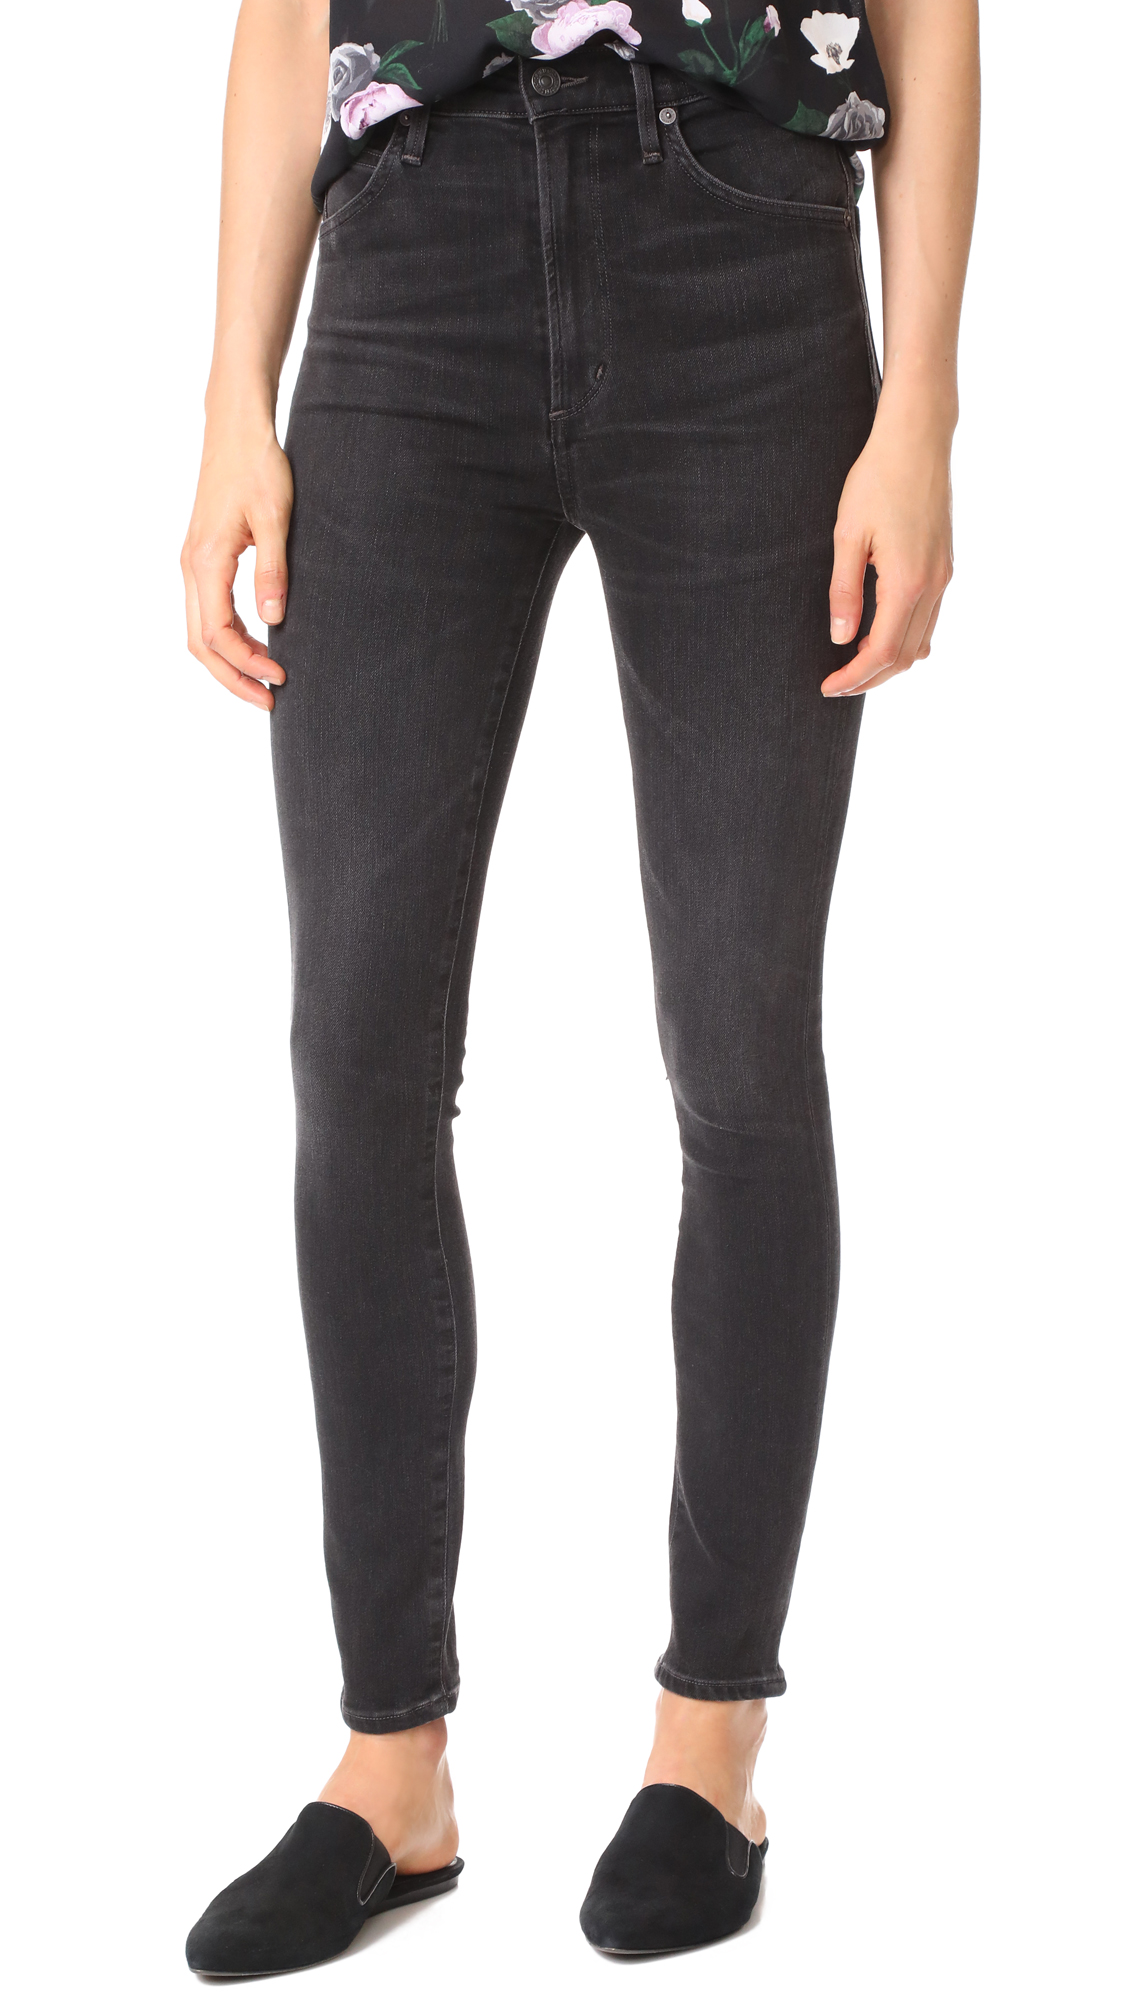 Citizens of Humanity Chrissy High Rise Skinny Jeans